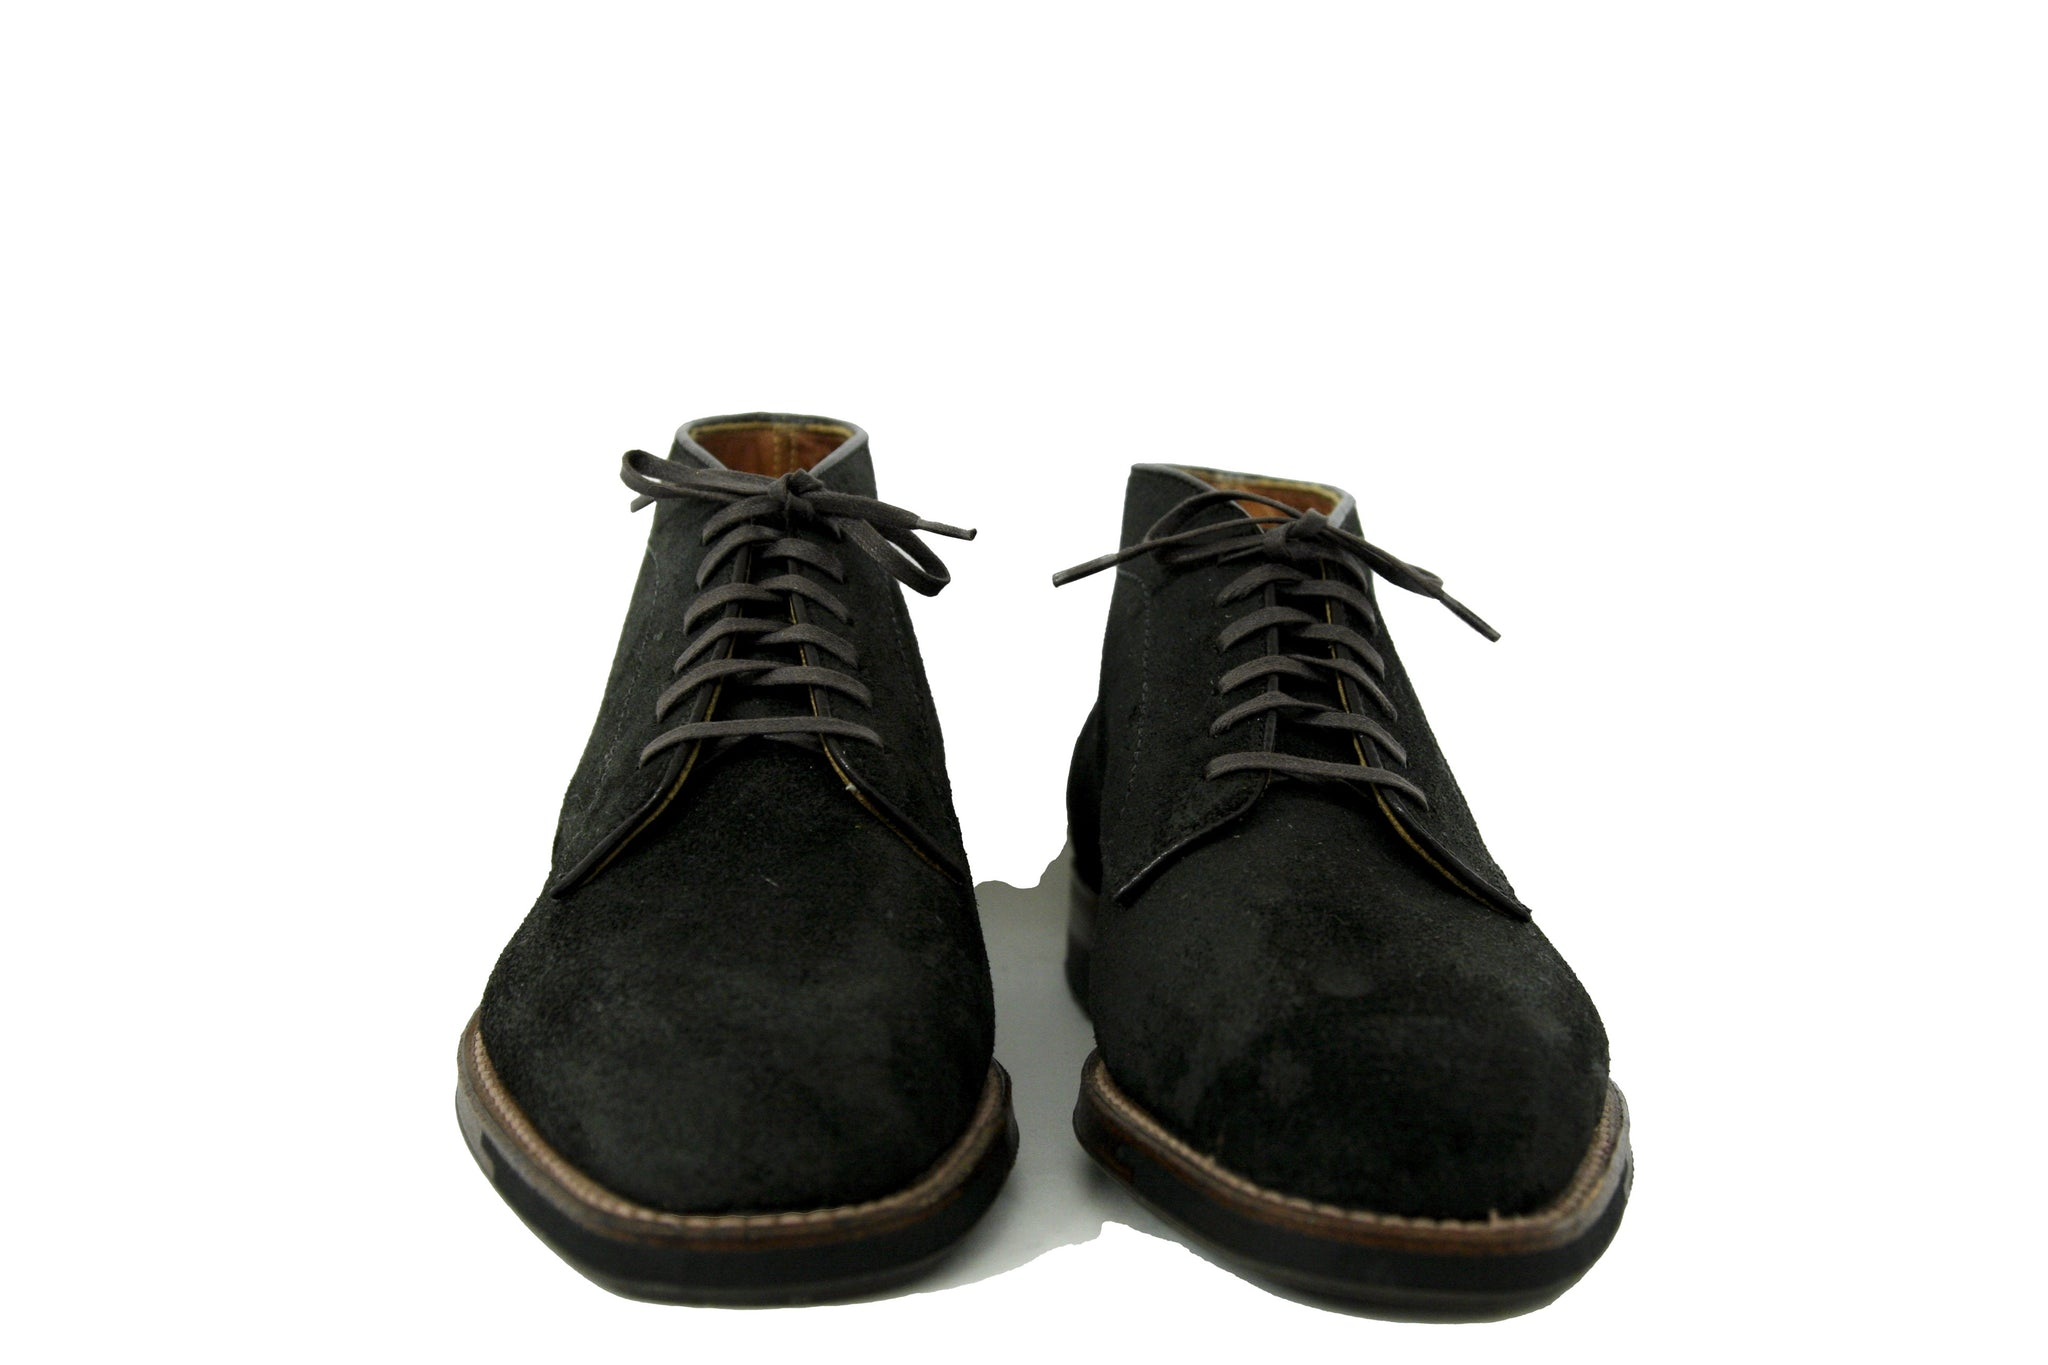 Alden Six Eyelet Plain Toe Suede Chukka Reverse Earth Rough-Out Suede